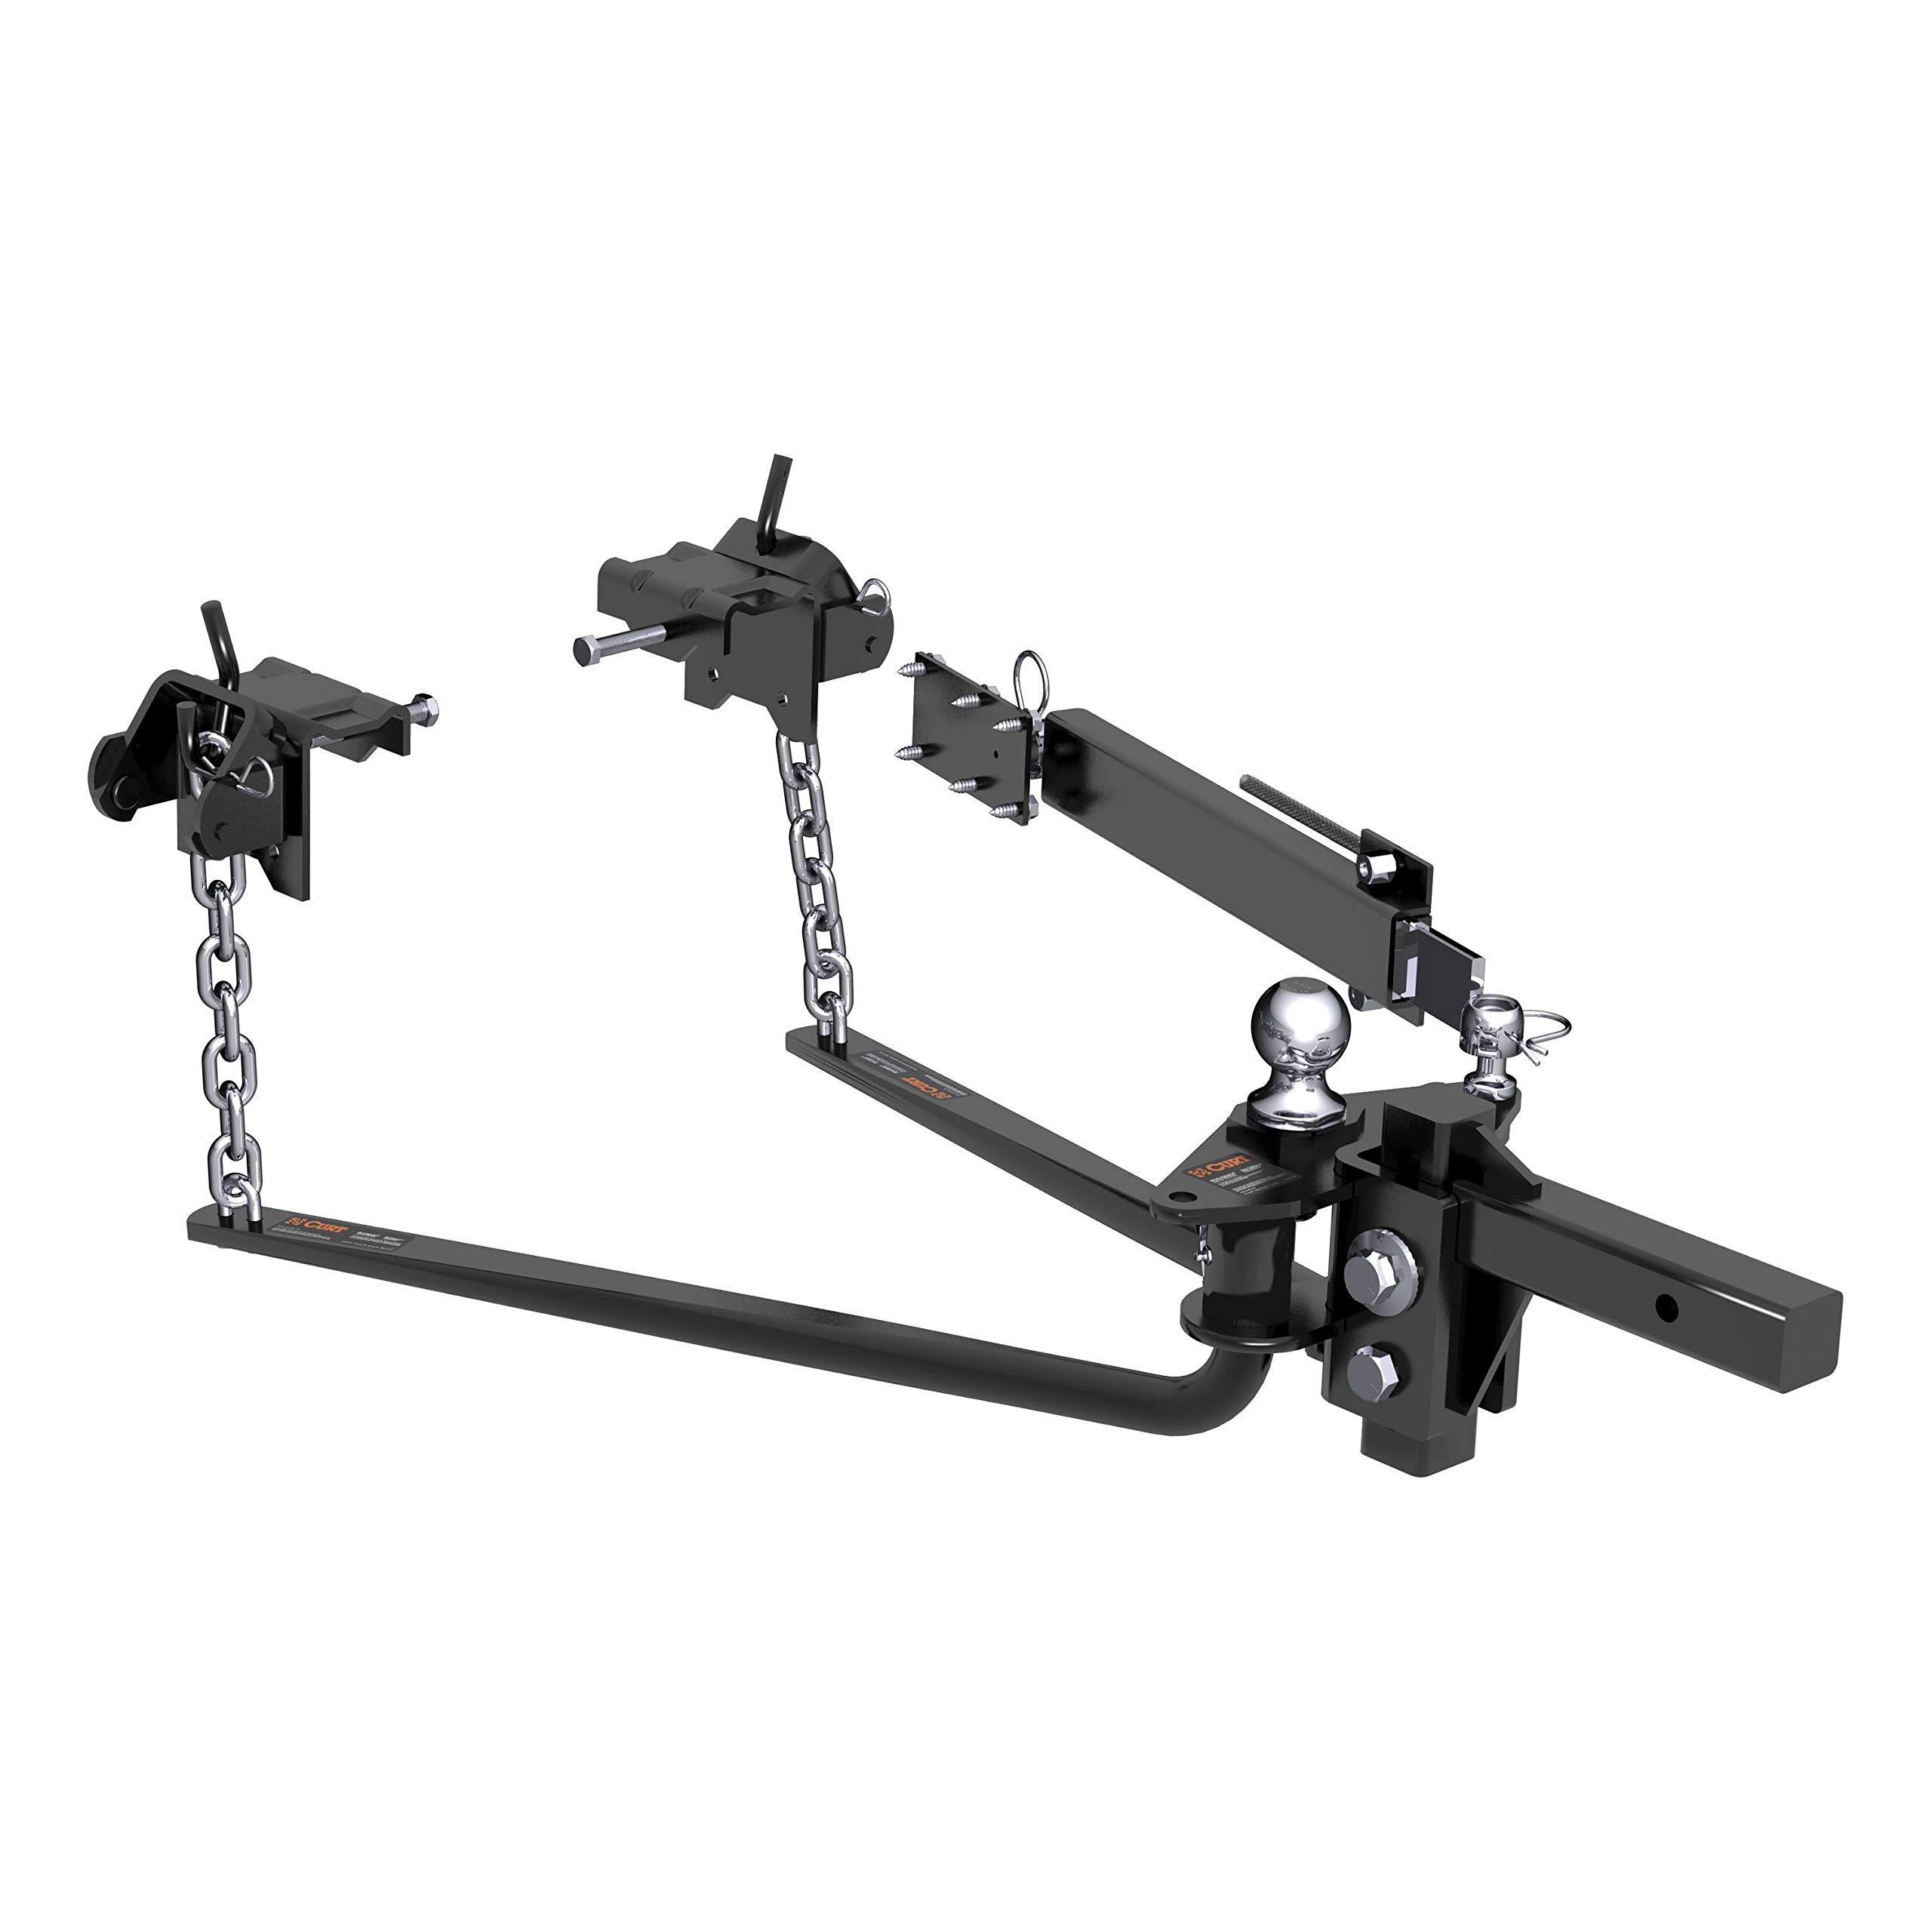 CURT 17063 MV Black Round Bar Weight Distribution Hitch with Sway Control Kit (14,000 lbs. GTW, 2'' Shank, 2-5/16'' Ball) by CURT (Image #1)